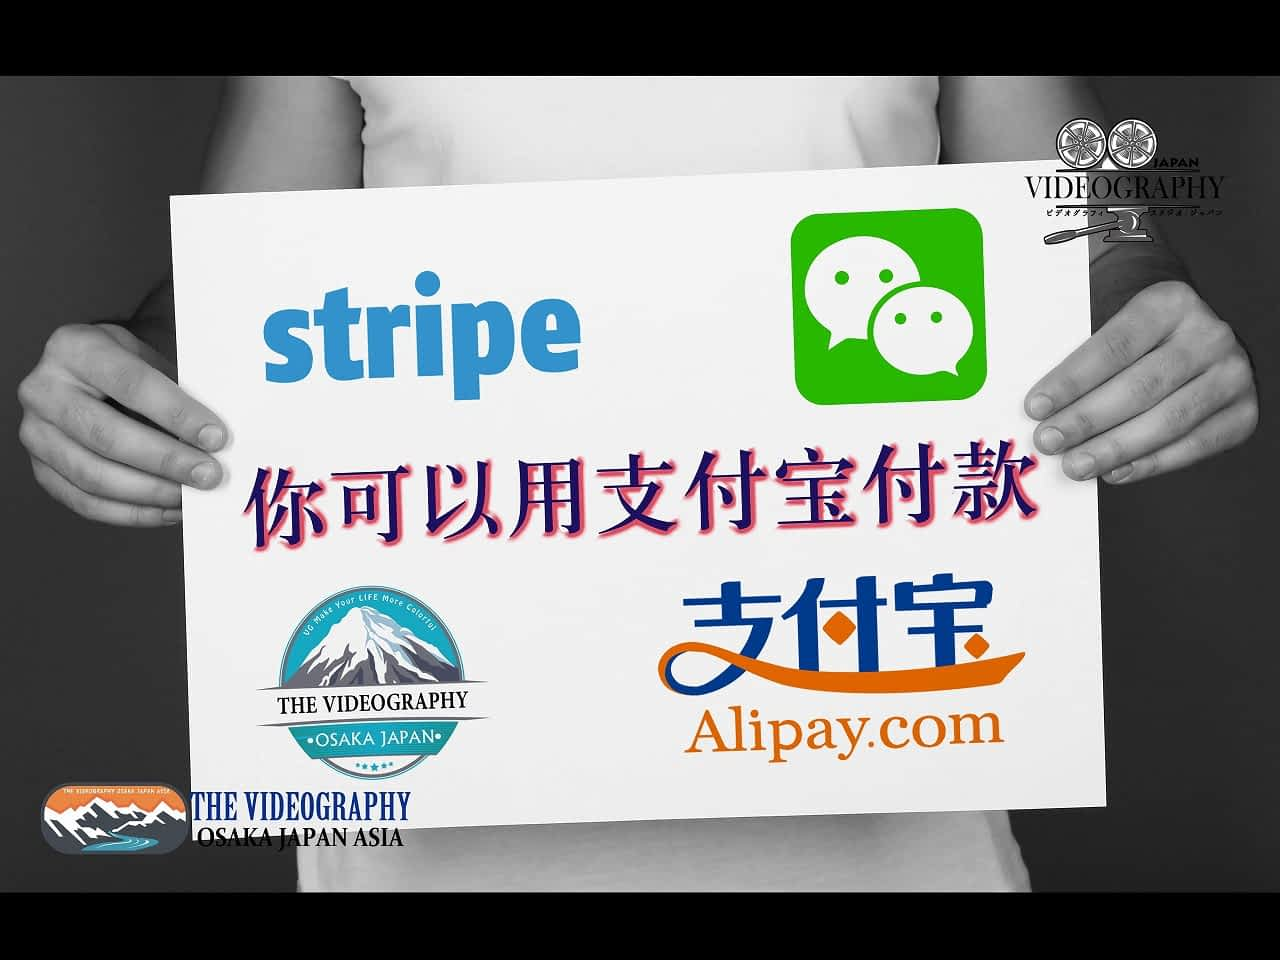 You can pay with Alipay and wechat on stripe soon!!